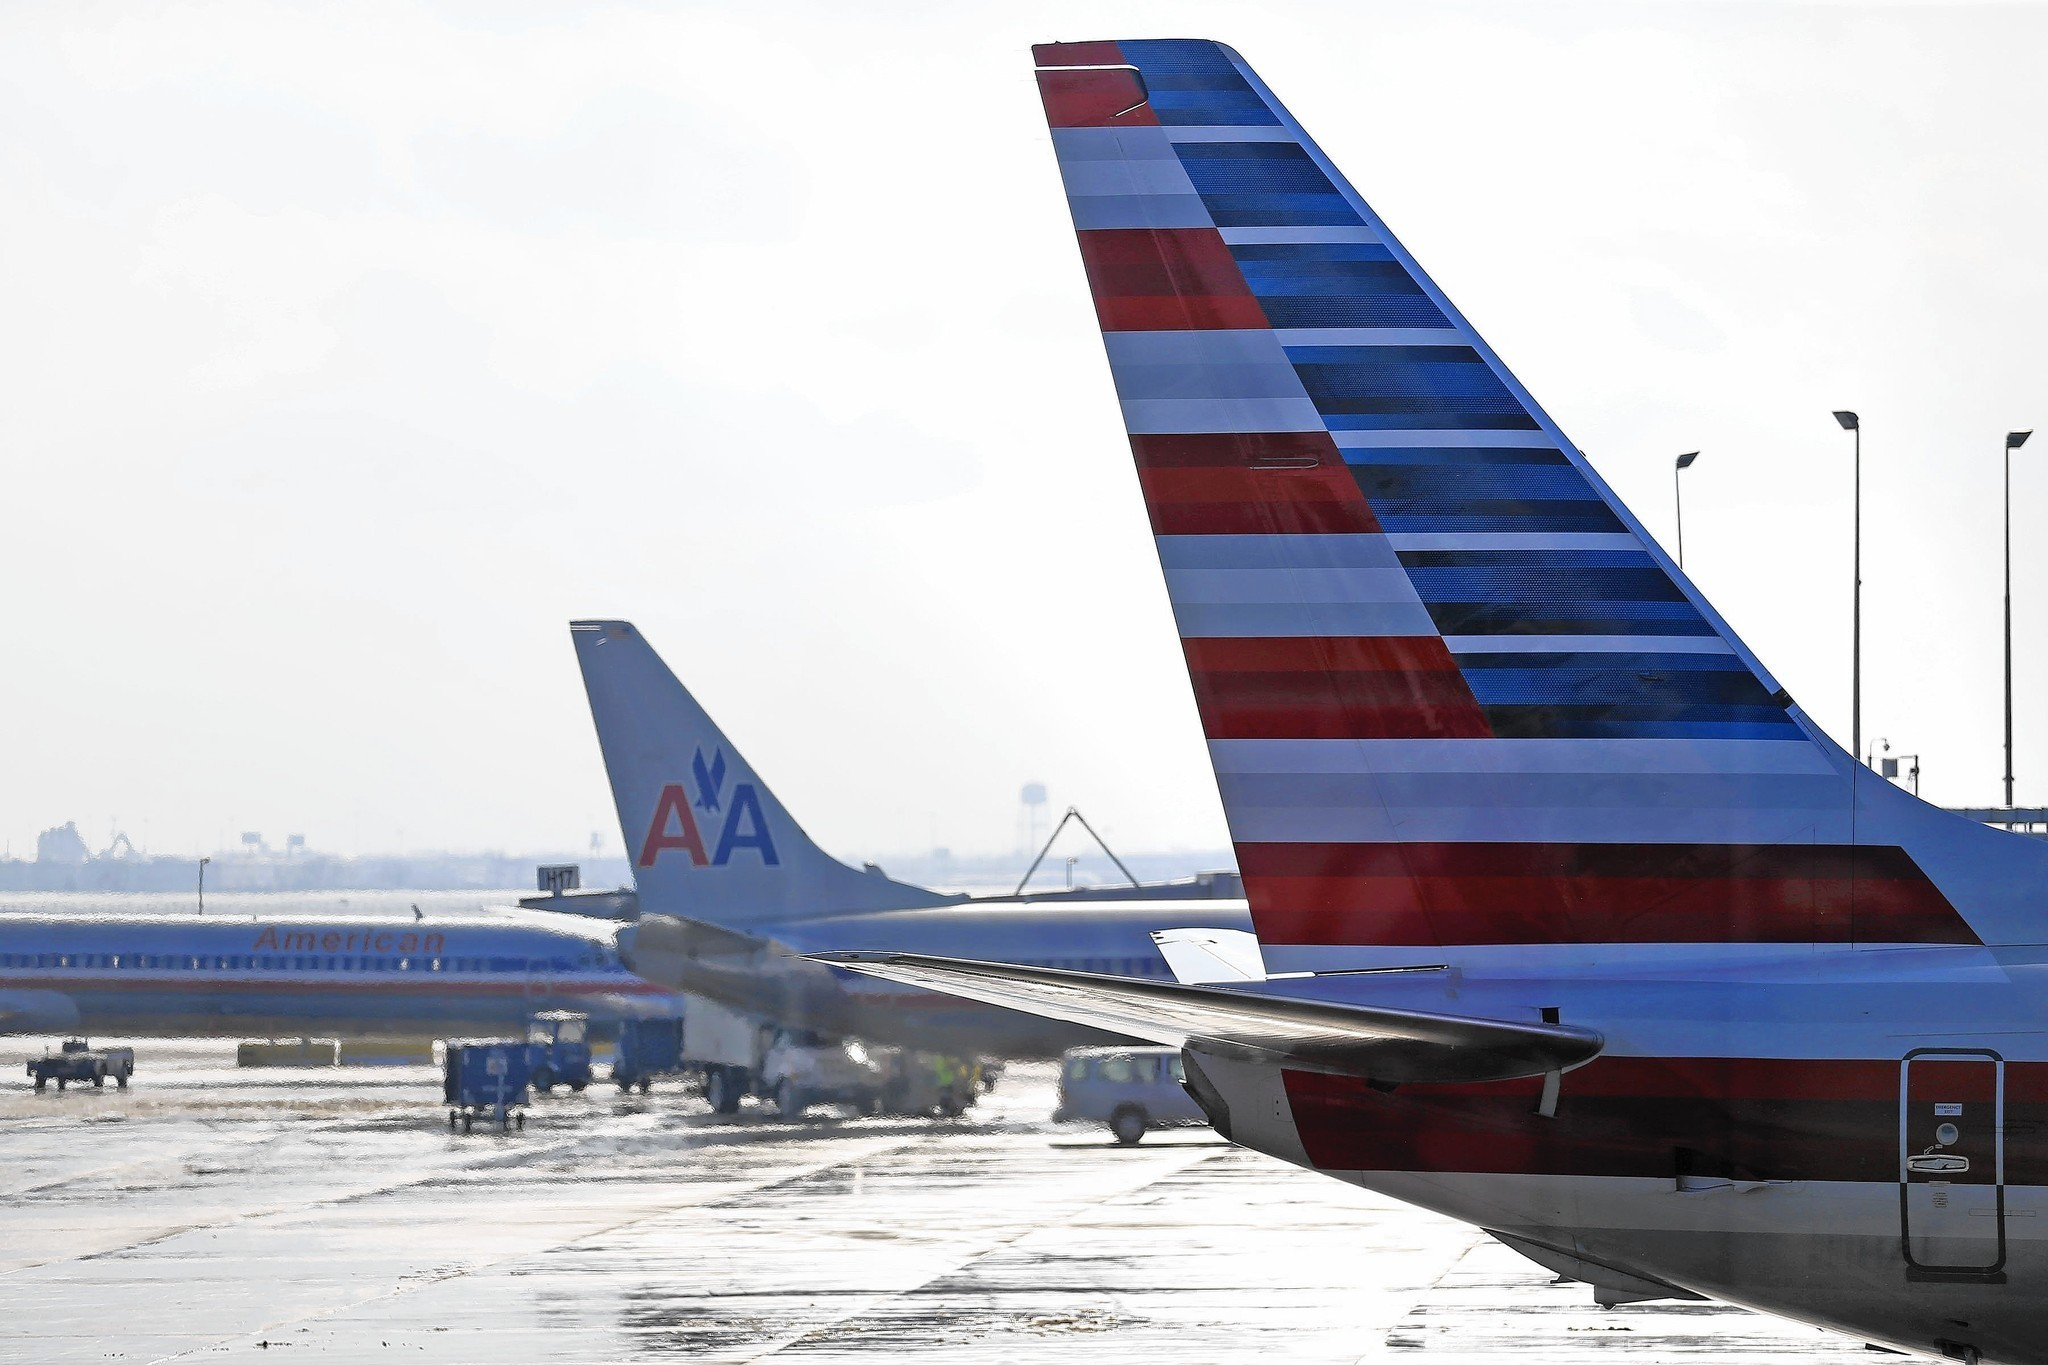 American Airlines Scores Big As New Official Airline Of